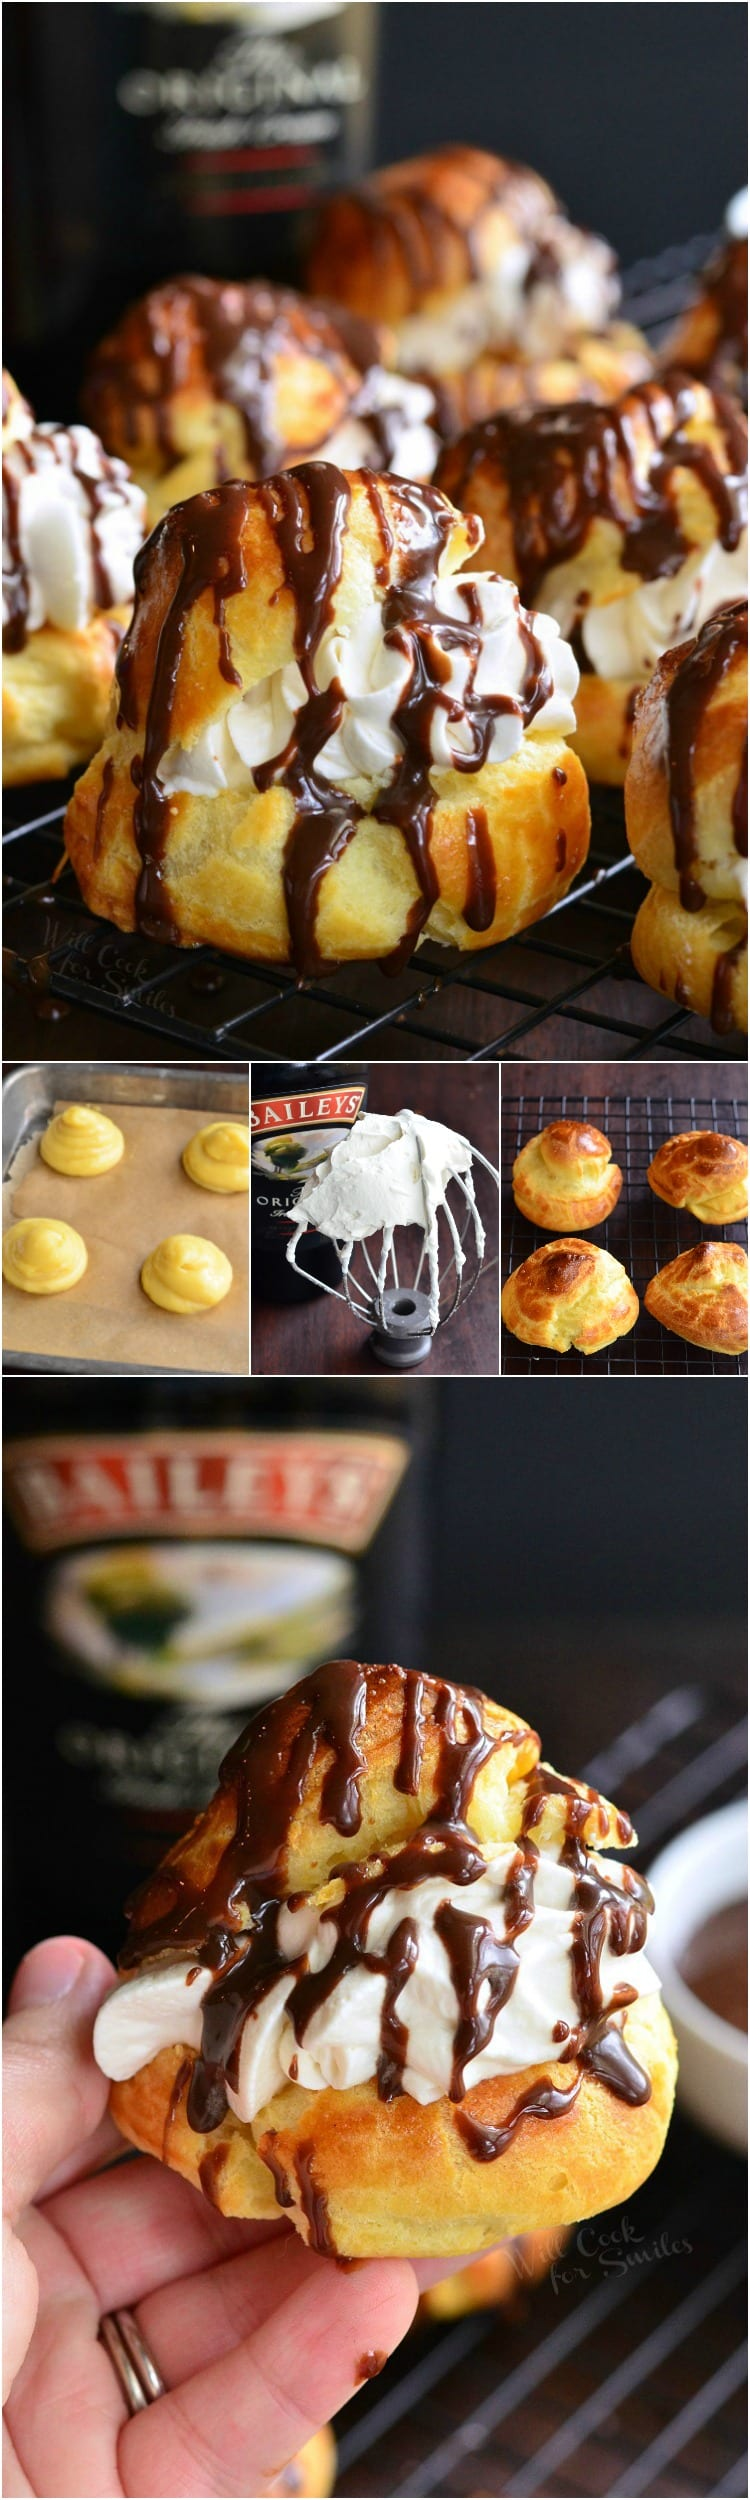 photo collage top photo Baileys Cream Puffs on a cooling rack, 2nd photo is steps to make puffs, uncooked puffs, whipped cream on a mixer beater, cooked puffs, last photo is holding a puff